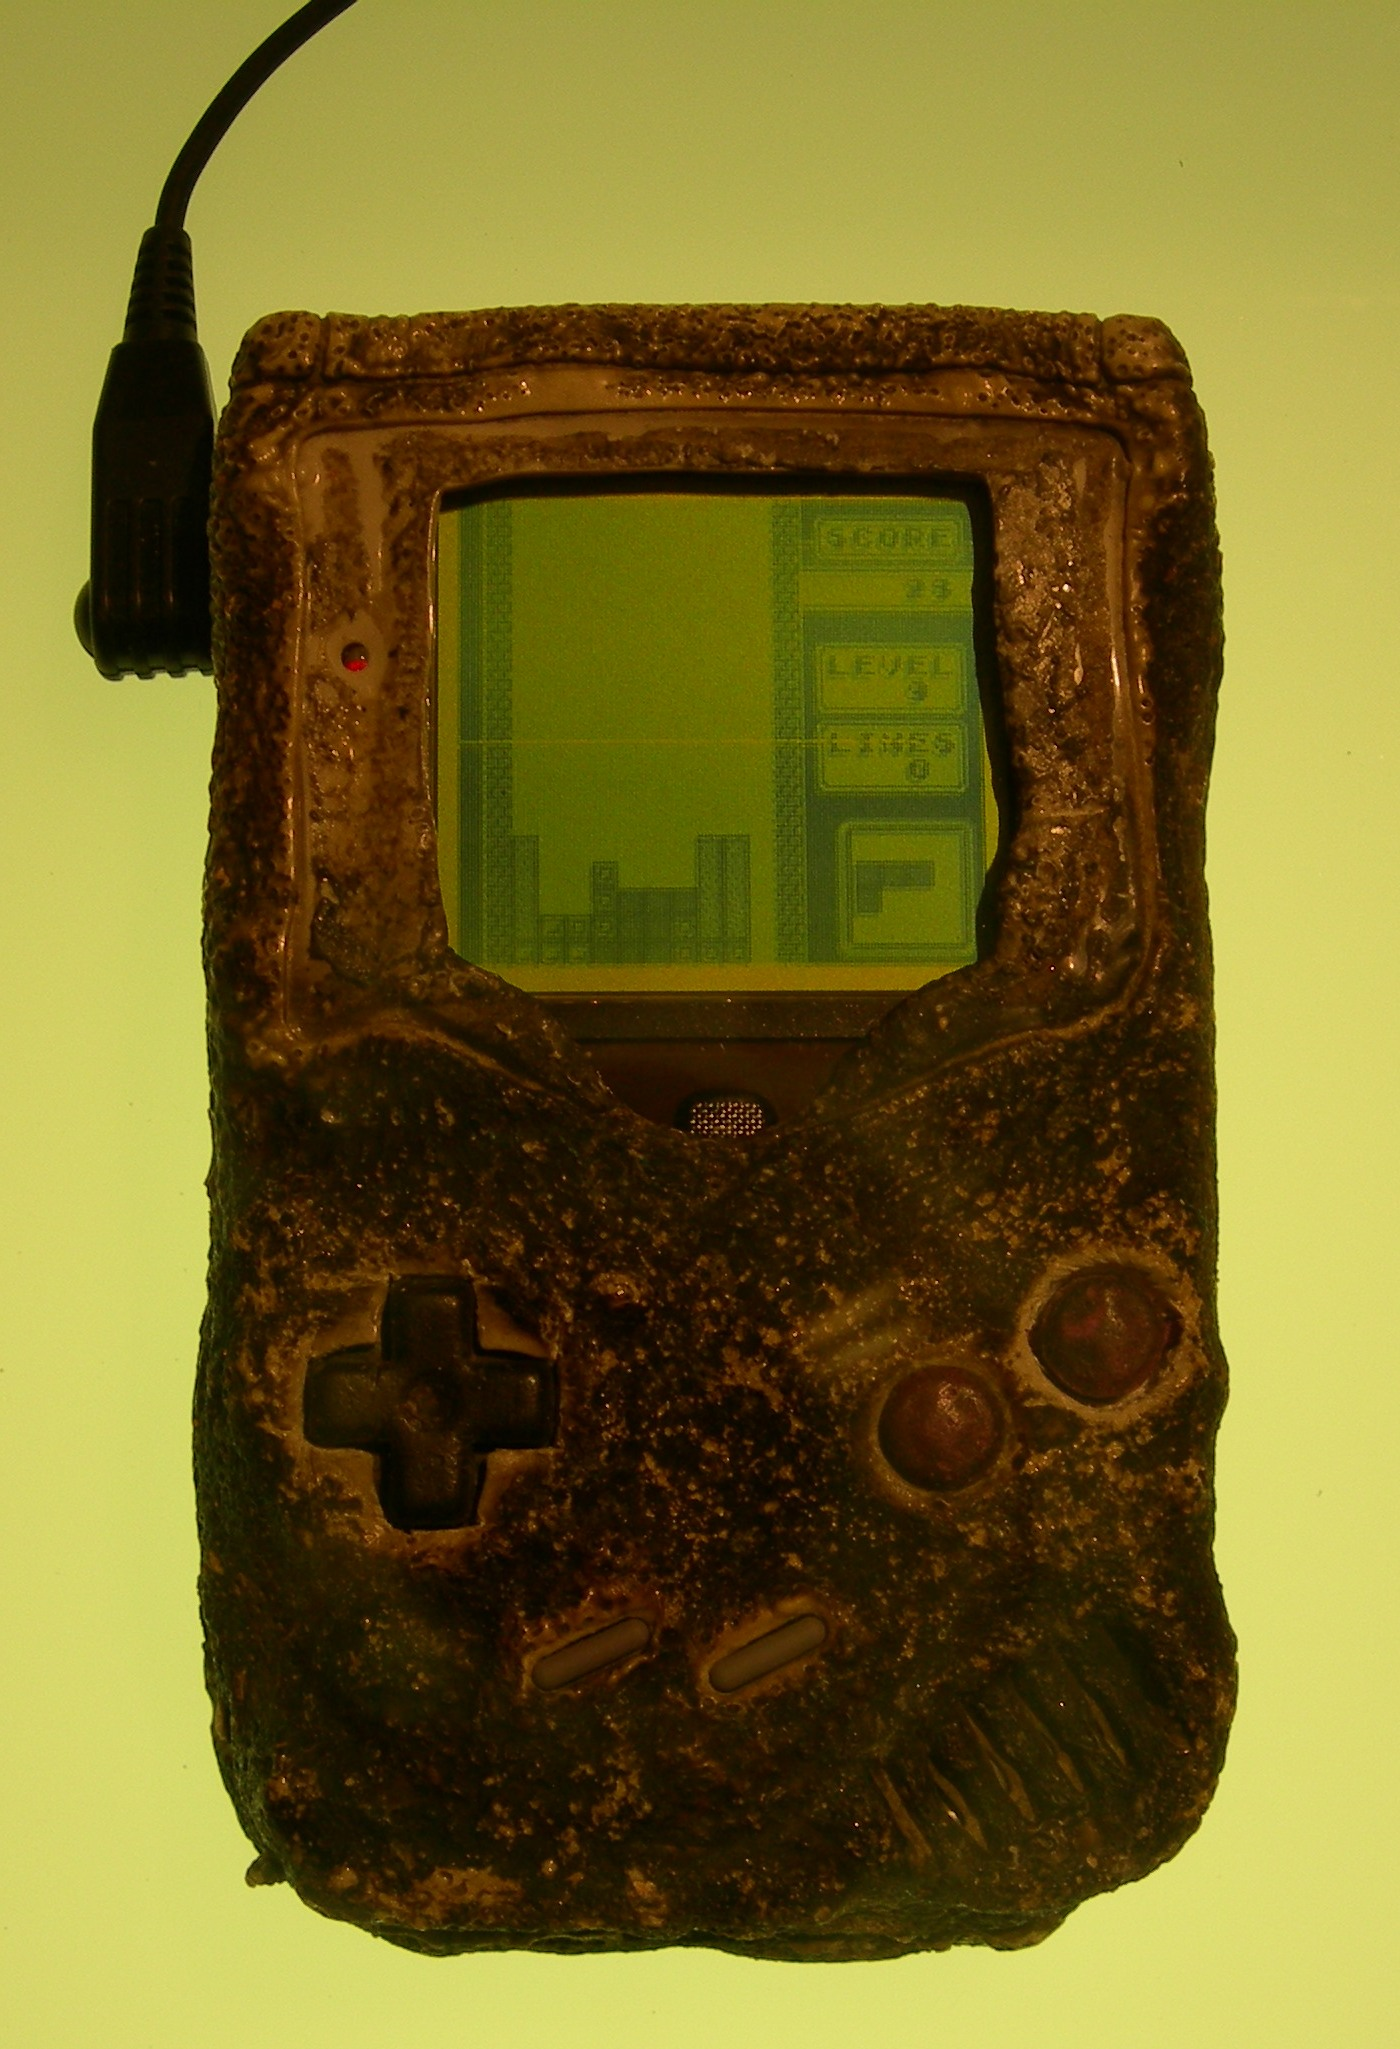 File:Game boy damaged in the gulf war.JPG - Wikipedia, the free ...